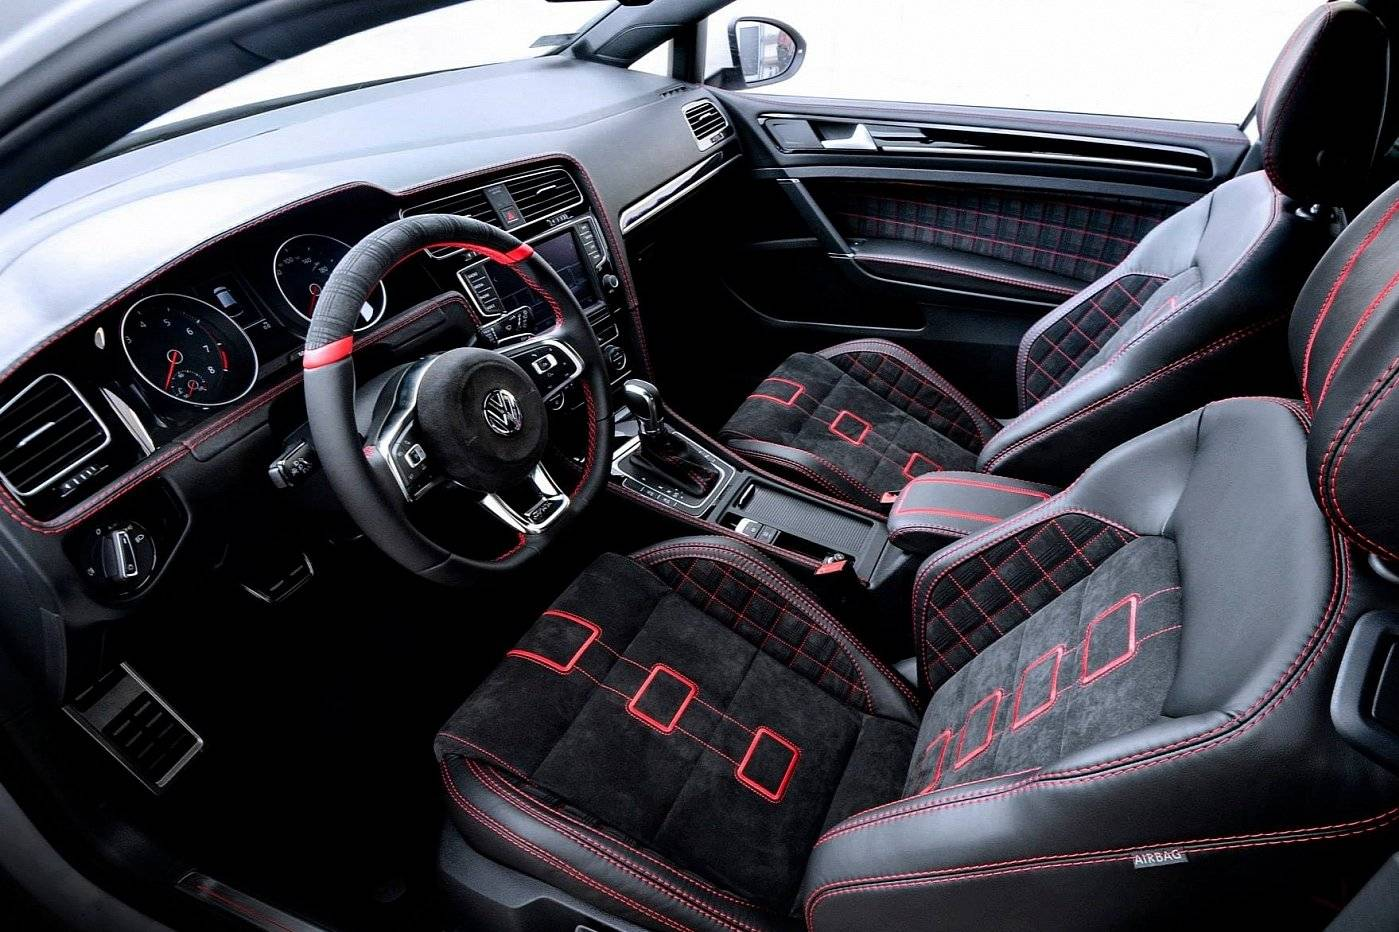 volkswagen golf gti lijdt aan lederfetisj tuning styling. Black Bedroom Furniture Sets. Home Design Ideas